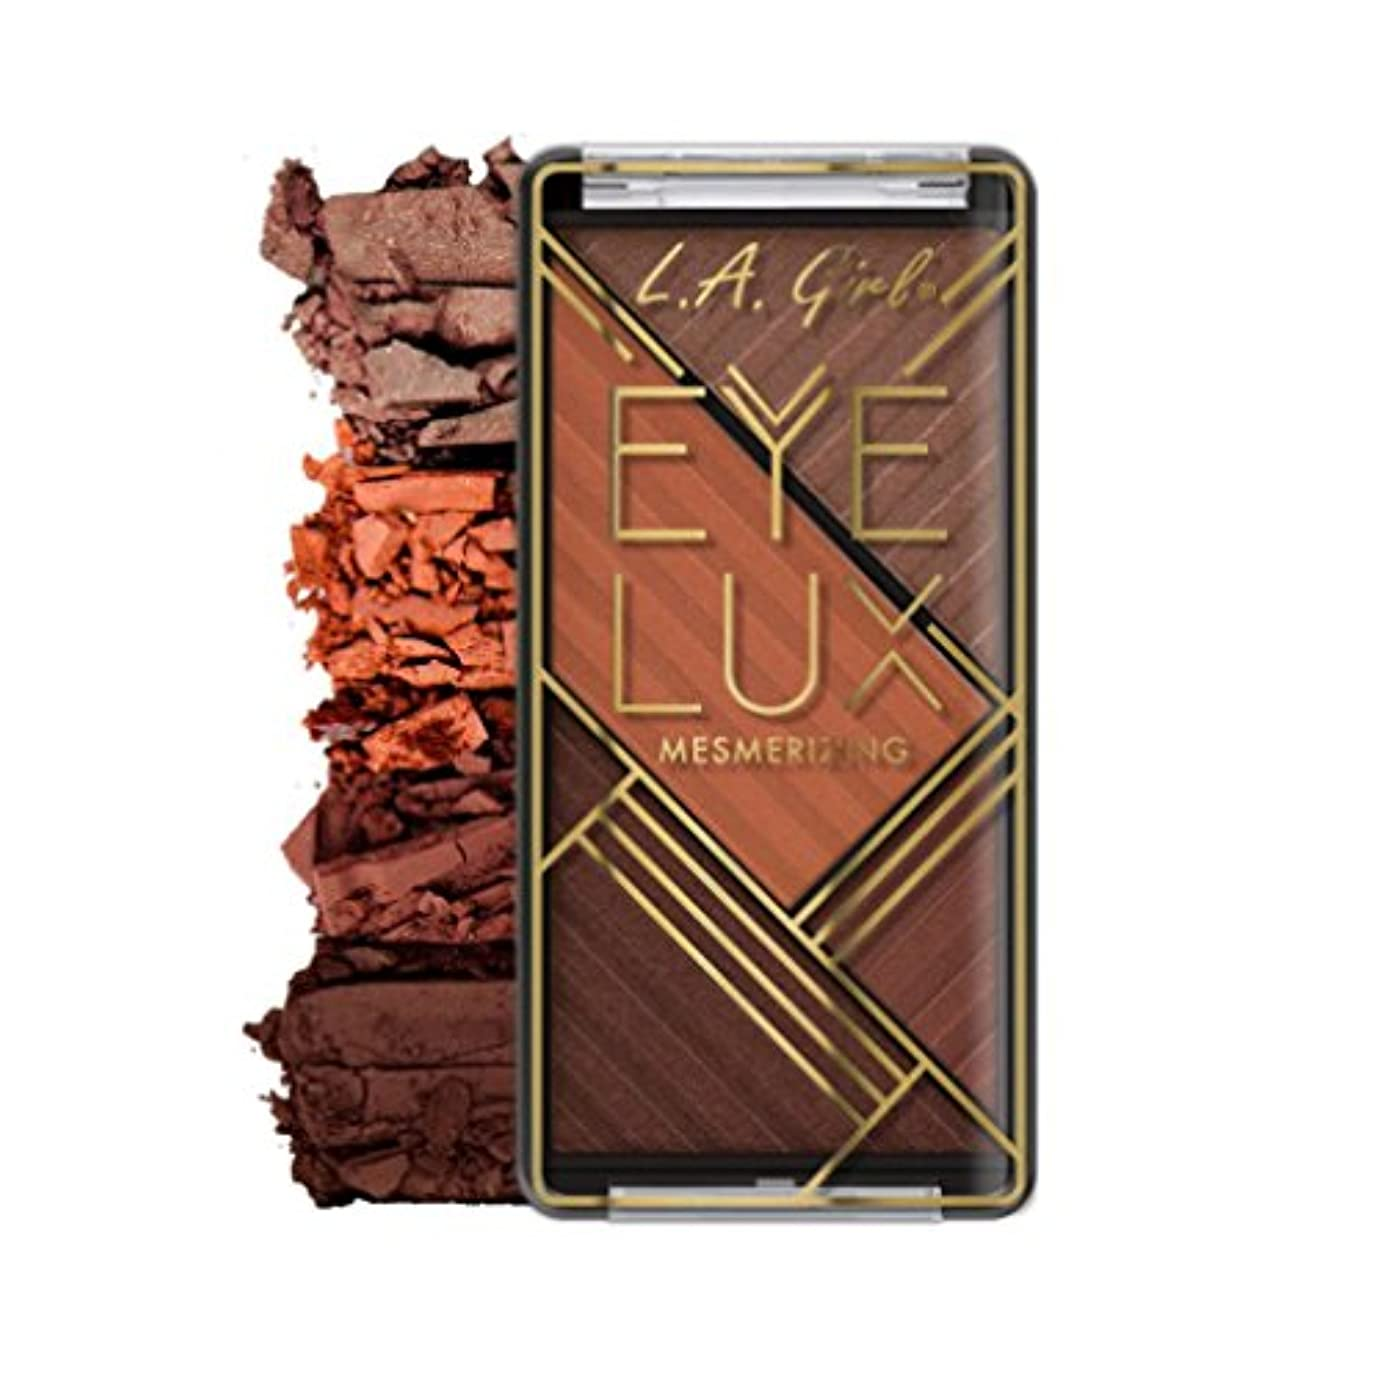 文房具勧めるタオル(3 Pack) L.A. GIRL Eye Lux Mesmerizing Eyeshadow - Energize (並行輸入品)